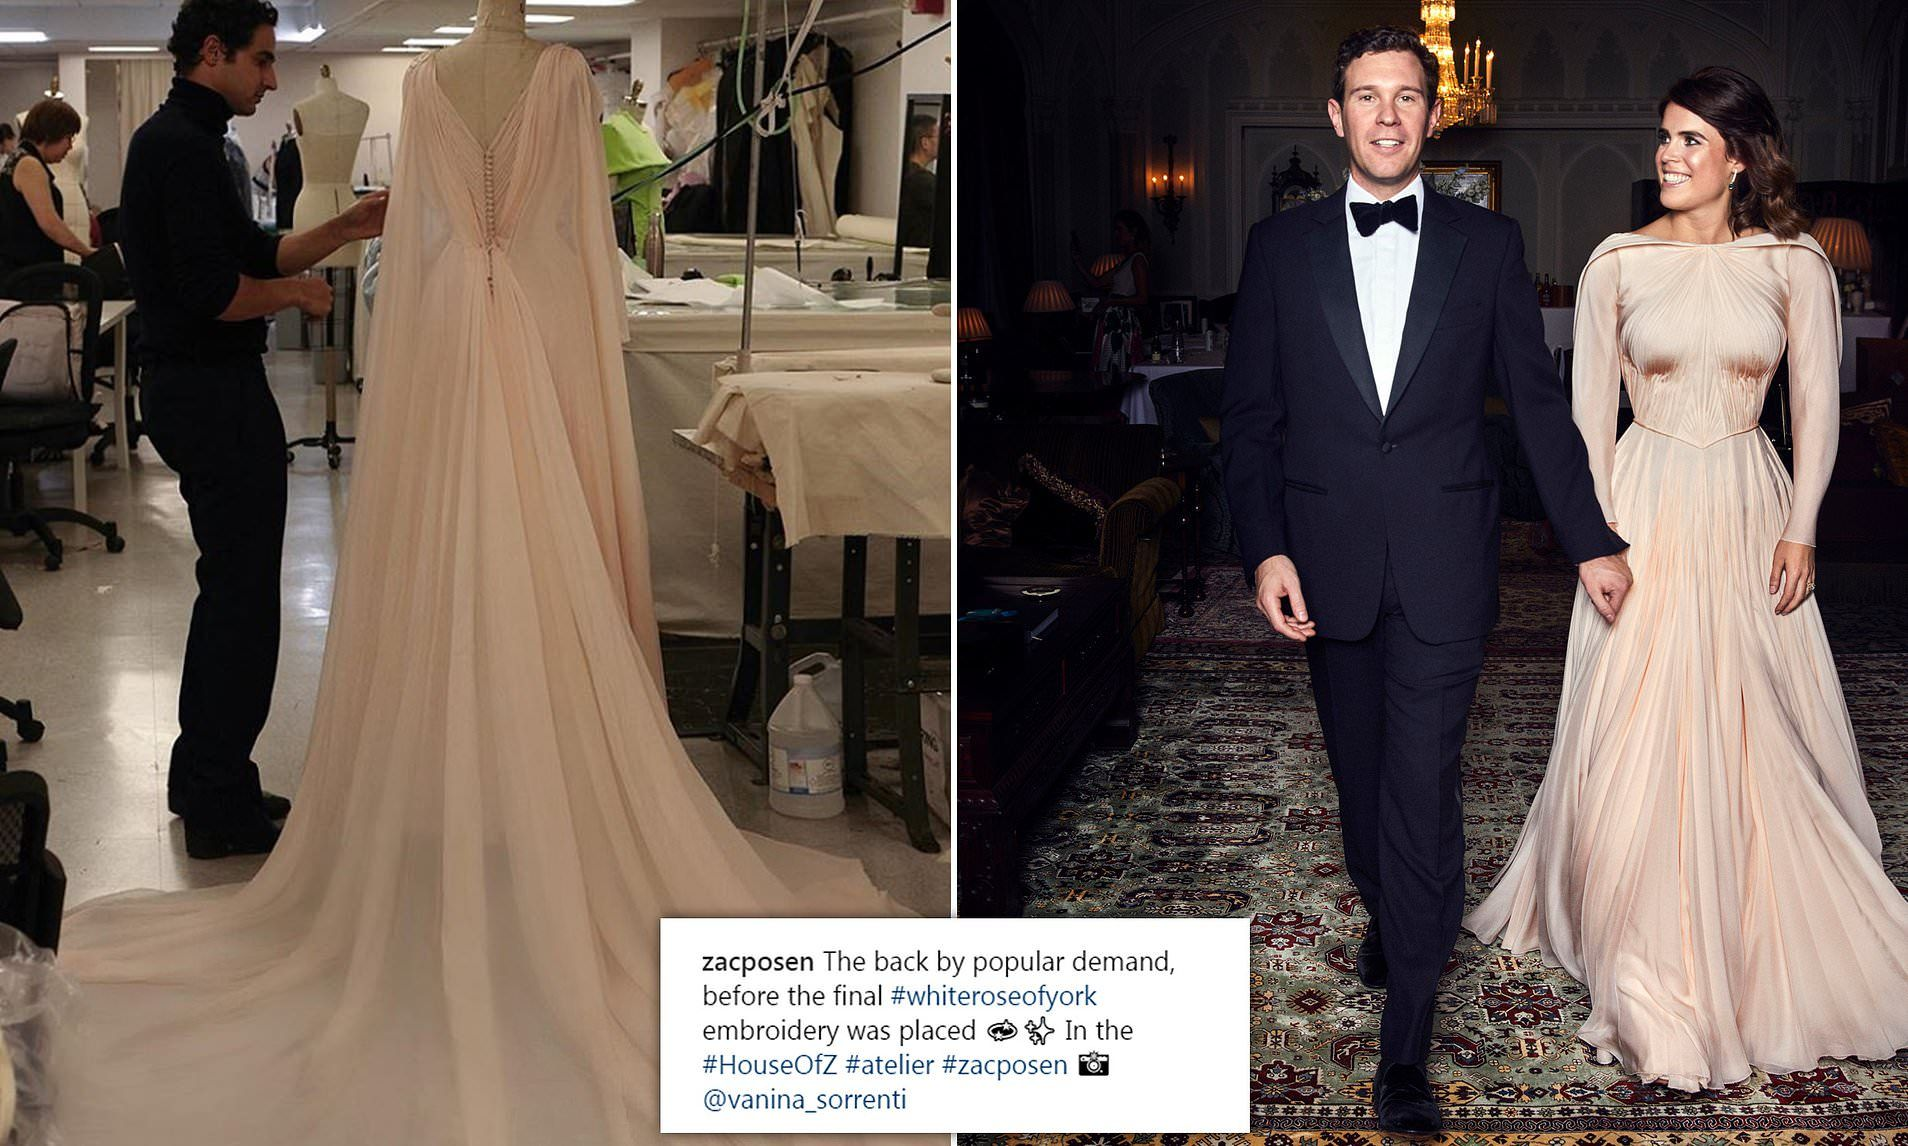 Princess Eugenie S Evening Dress Also Showed Off Scoliosis Scar